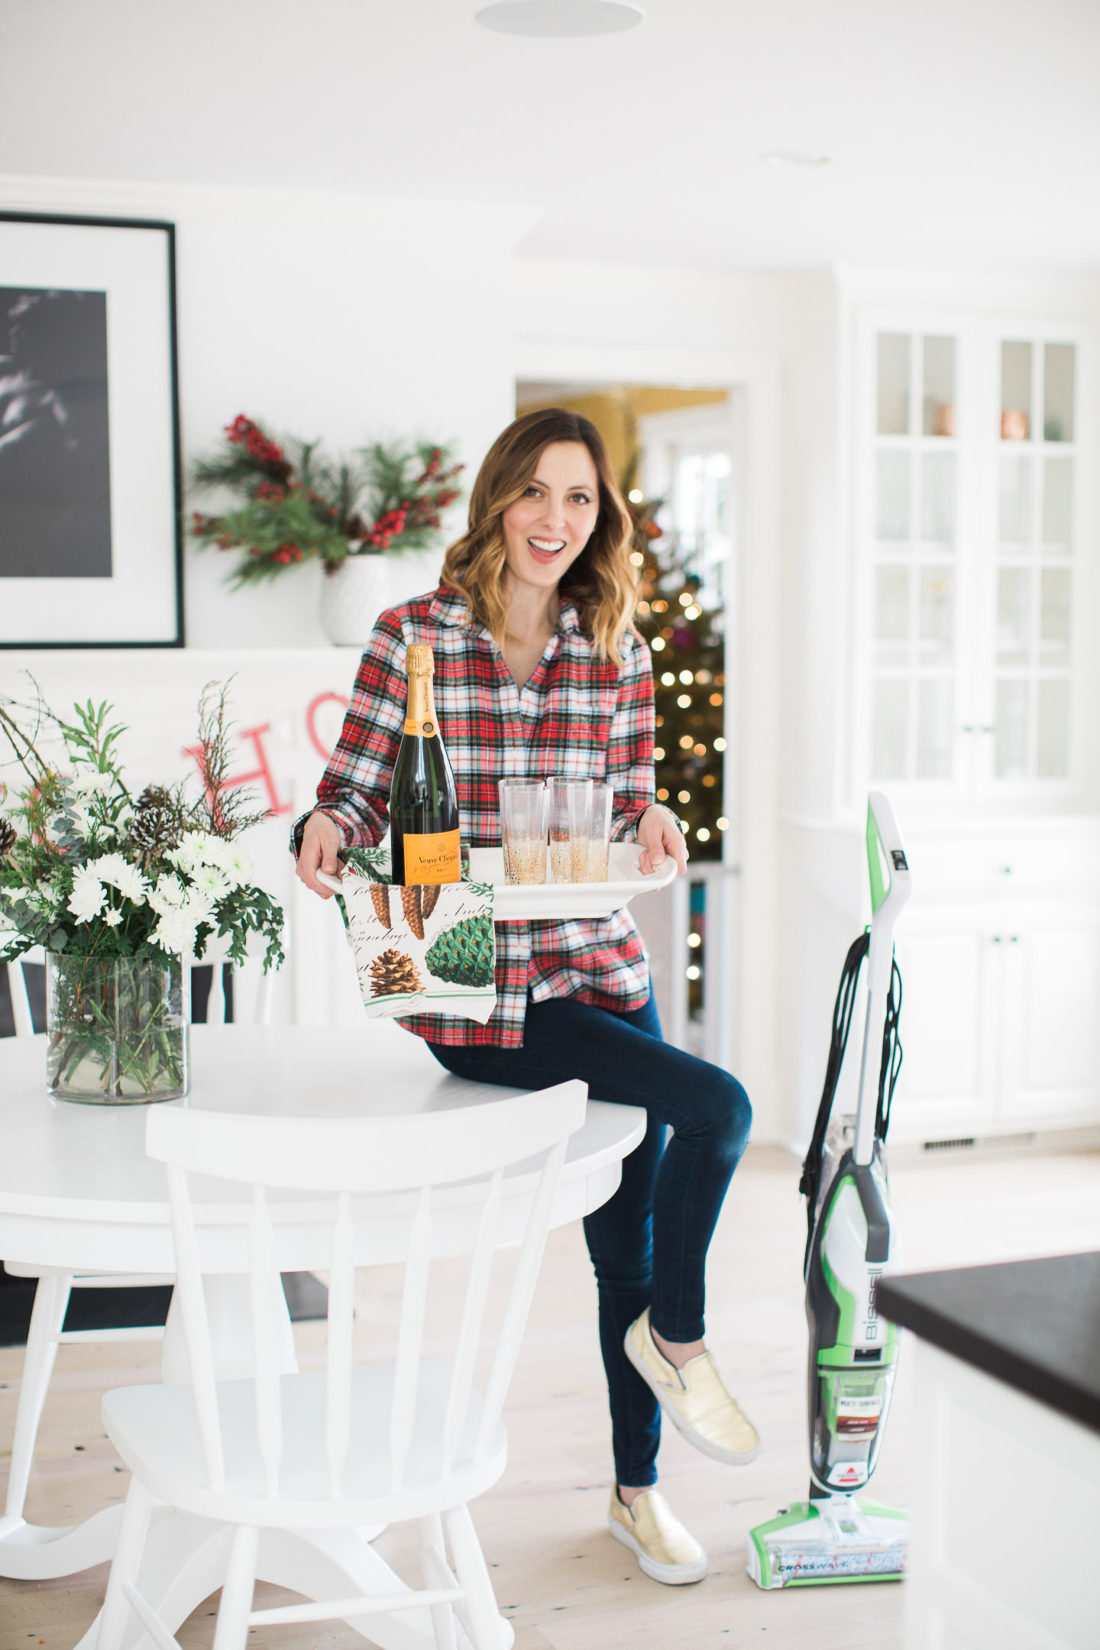 Eva Amurri Martino prepares for a holiday party in her kitchen with a tray of drinks and the bissell crosswave cleaning system